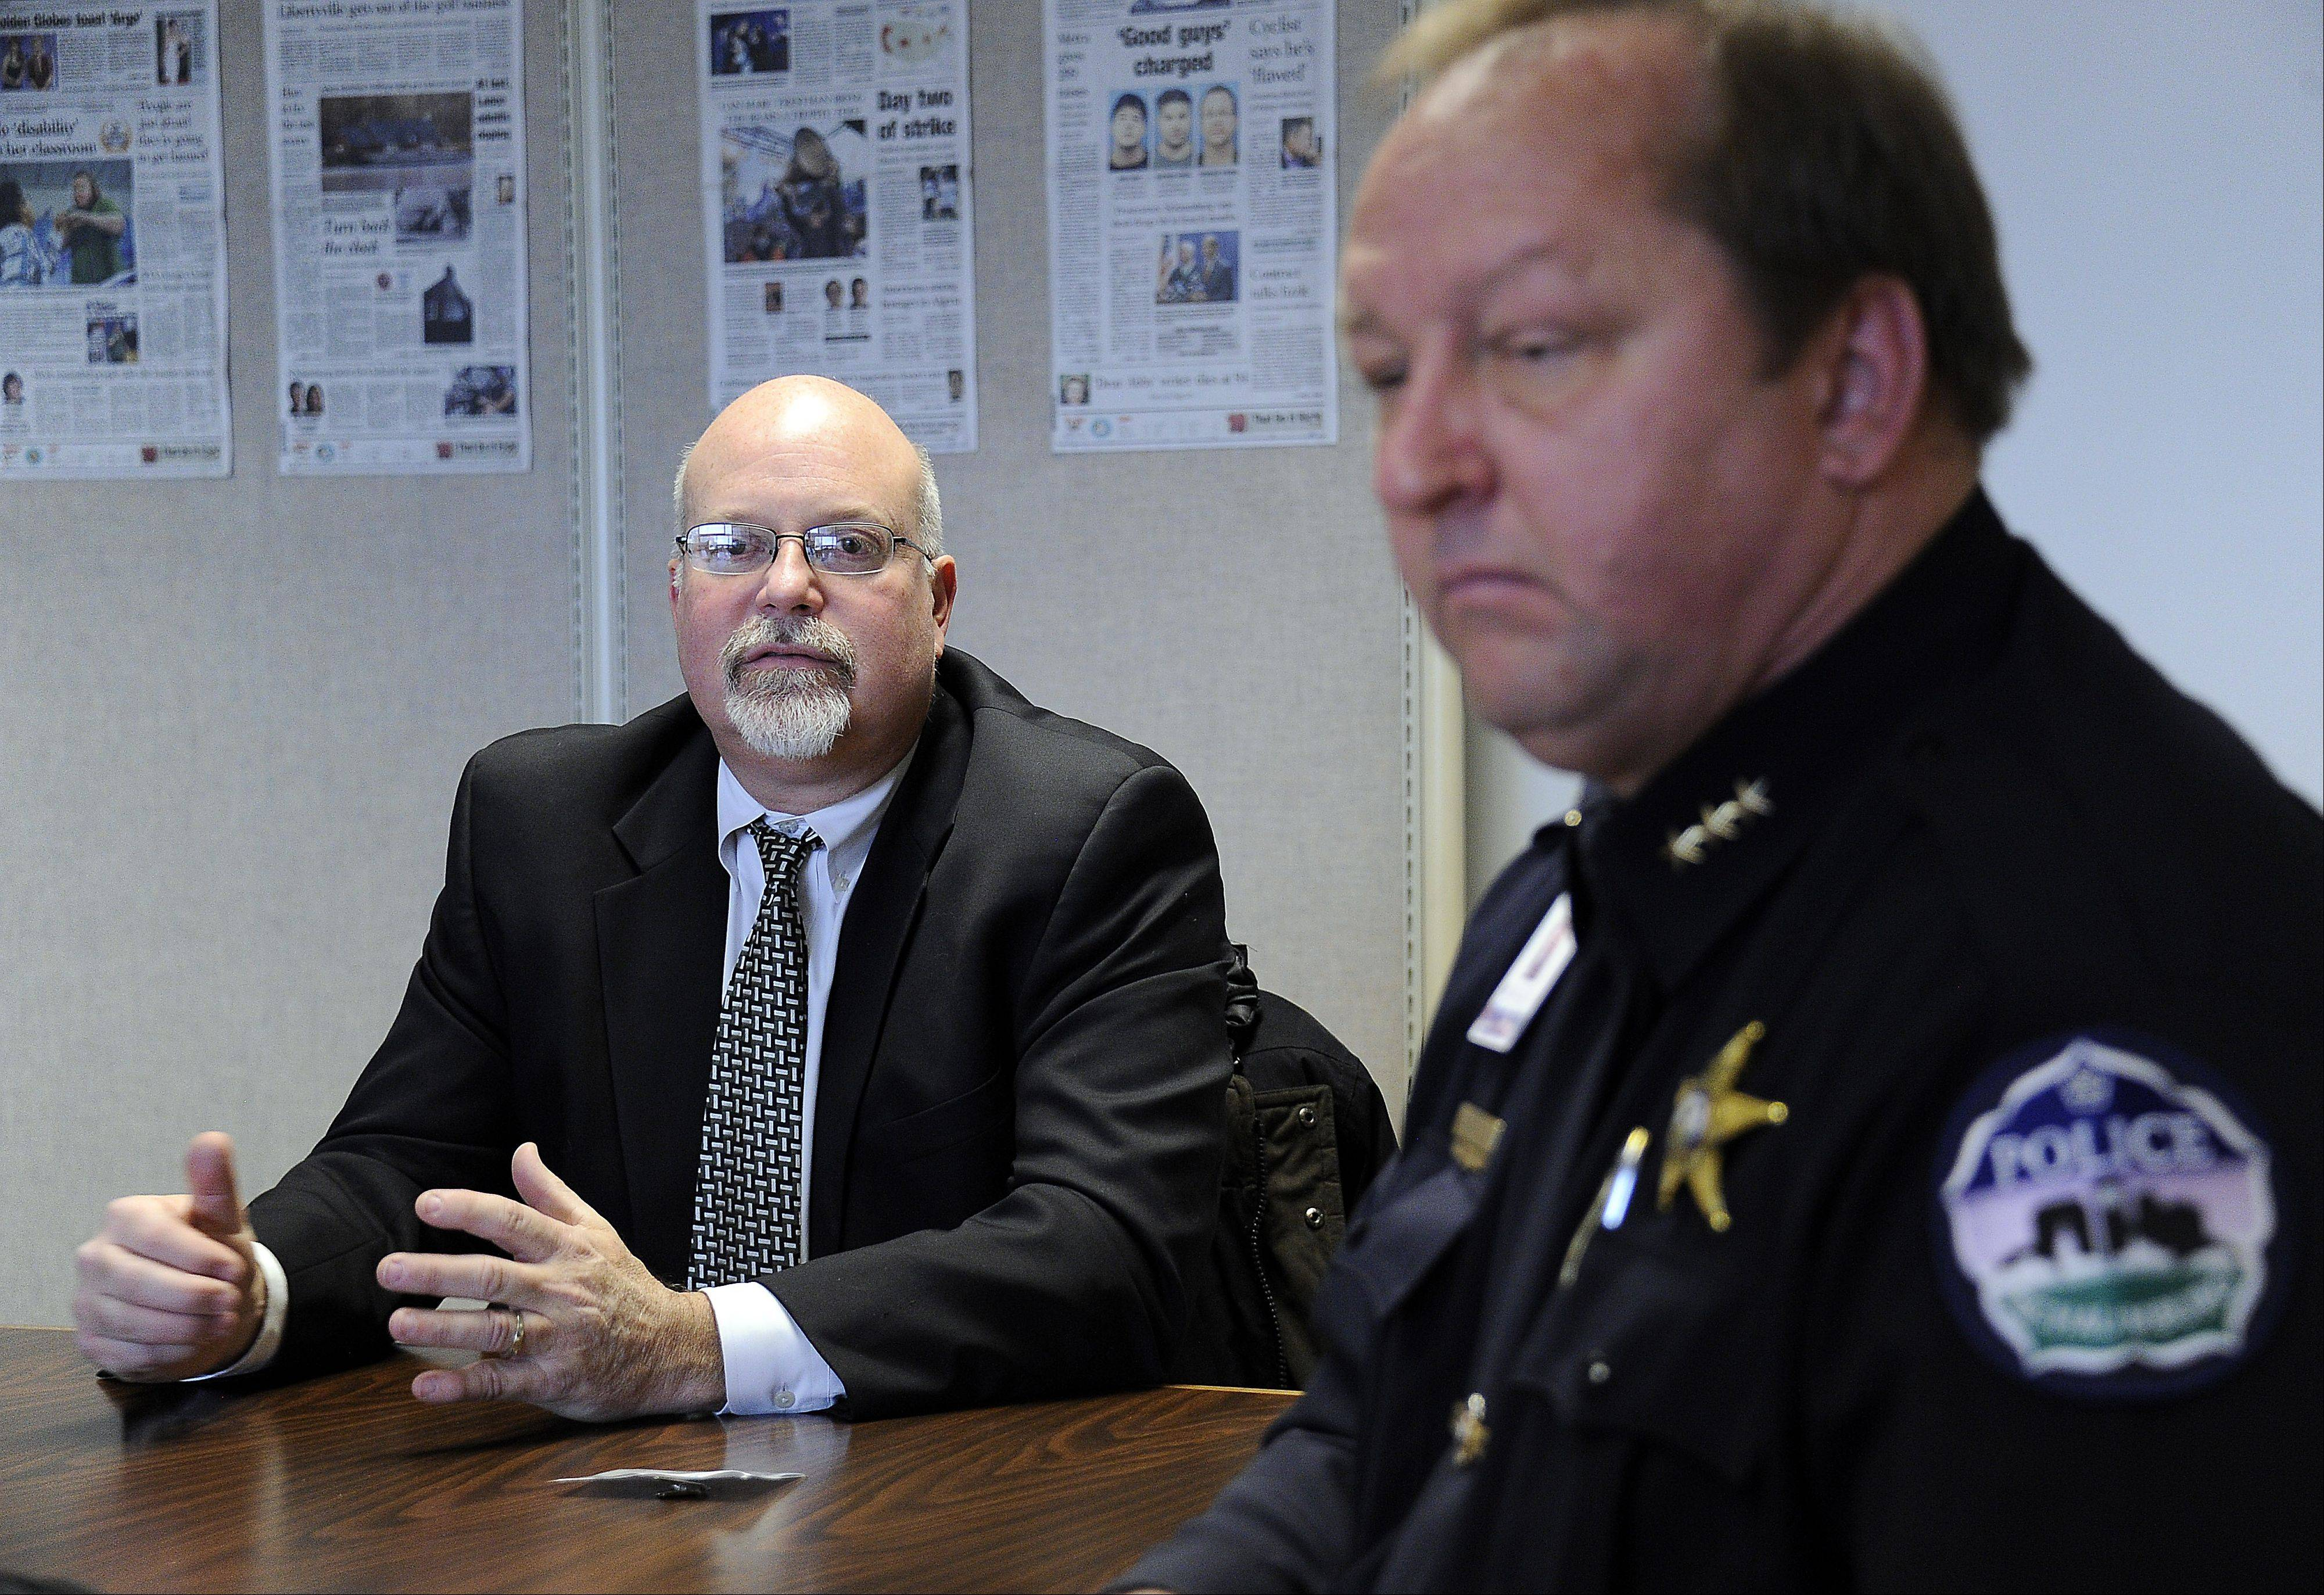 Schaumburg Village Manager Ken Fritz talks to the Daily Herald editorial board as Schaumburg Police Chief Brian Howerton listens Tuesday during a discussion of last week's arrests of three police officers on drug charges.